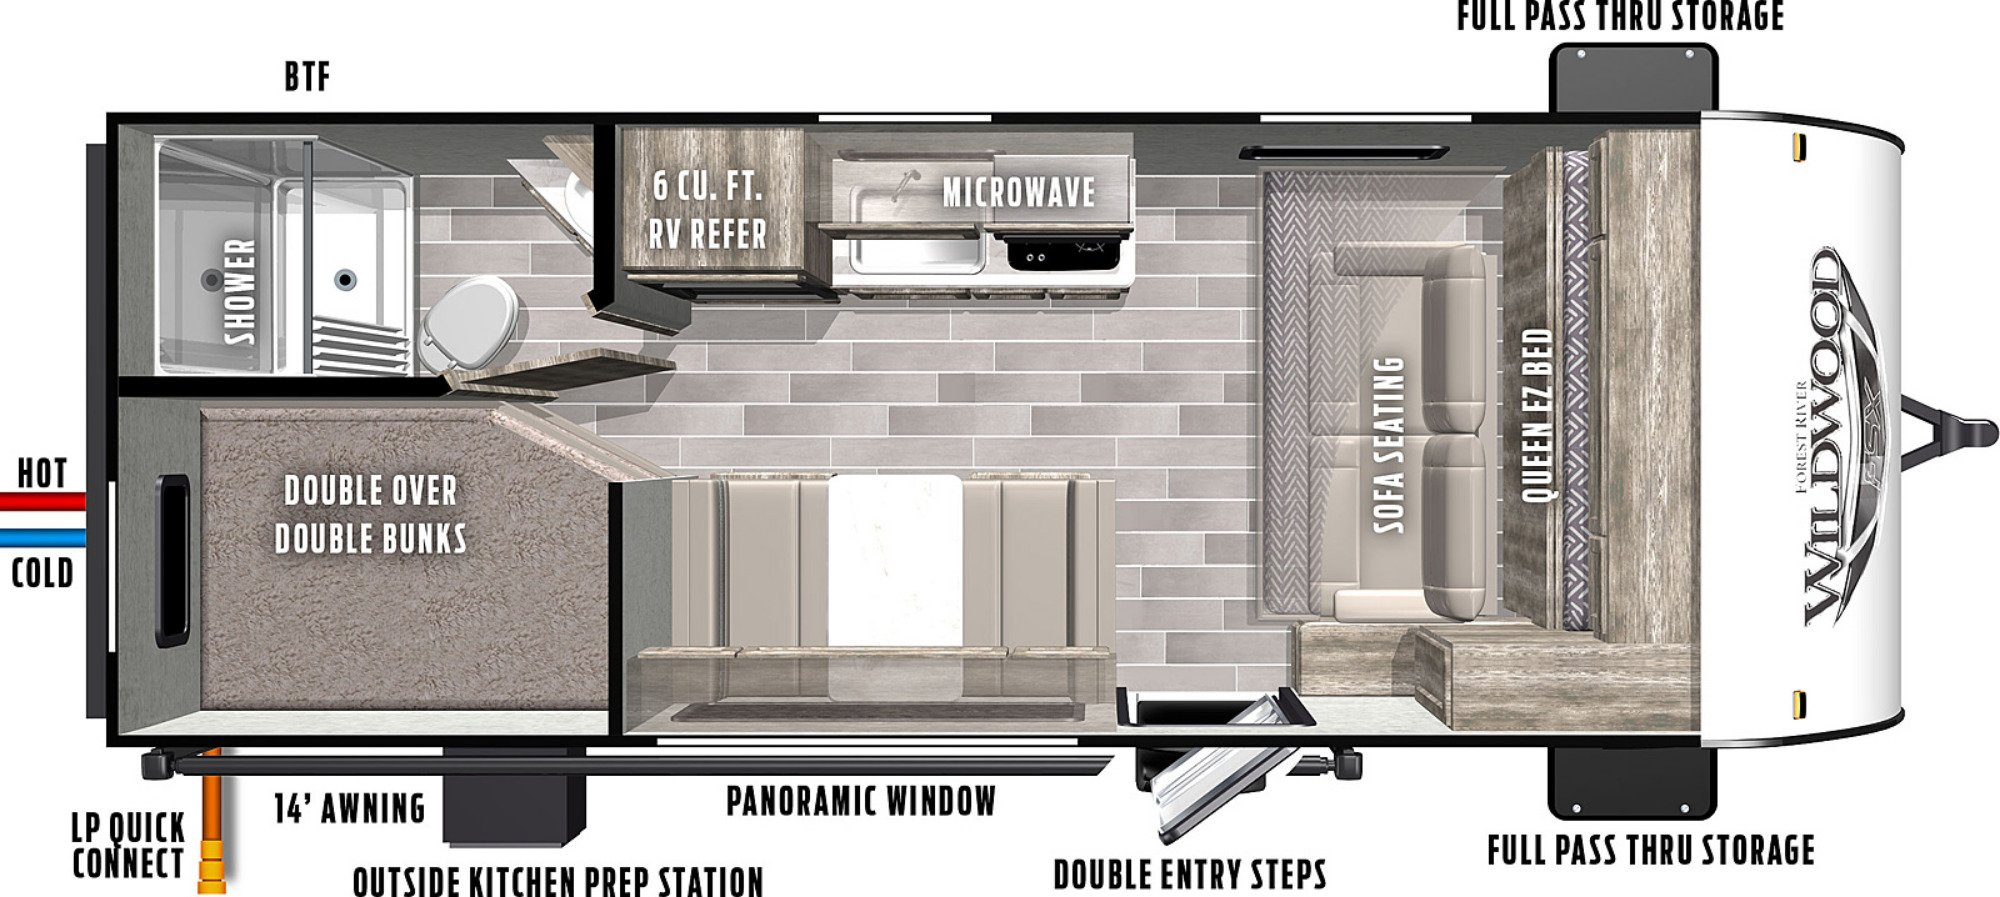 View Floor Plan for 2021 FOREST RIVER WILDWOOD FSX 179DBKX